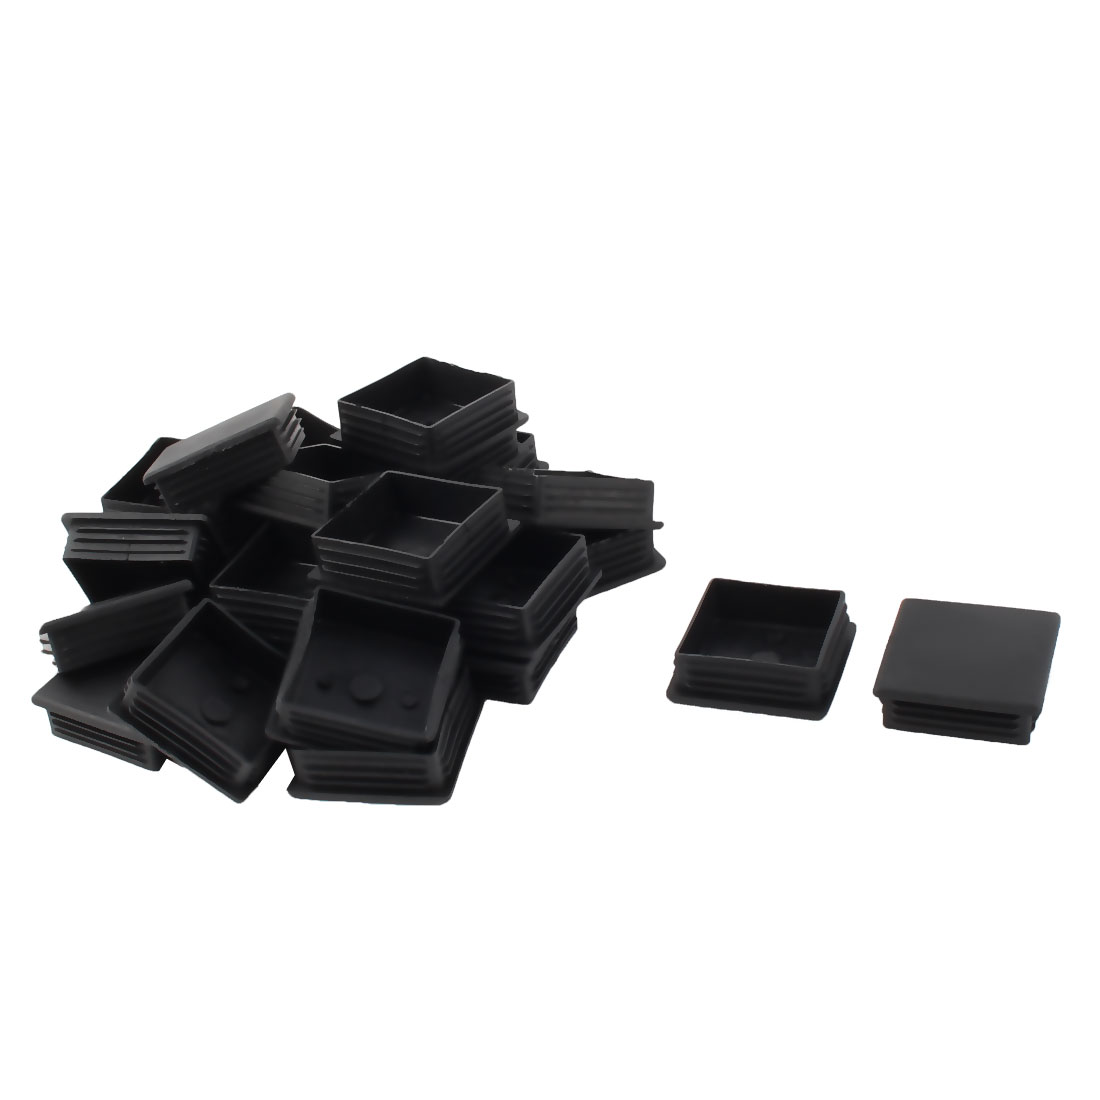 Furniture Table Plastic Square Tube Insert Protector Cap Black 60mm x 60mm 24pcs